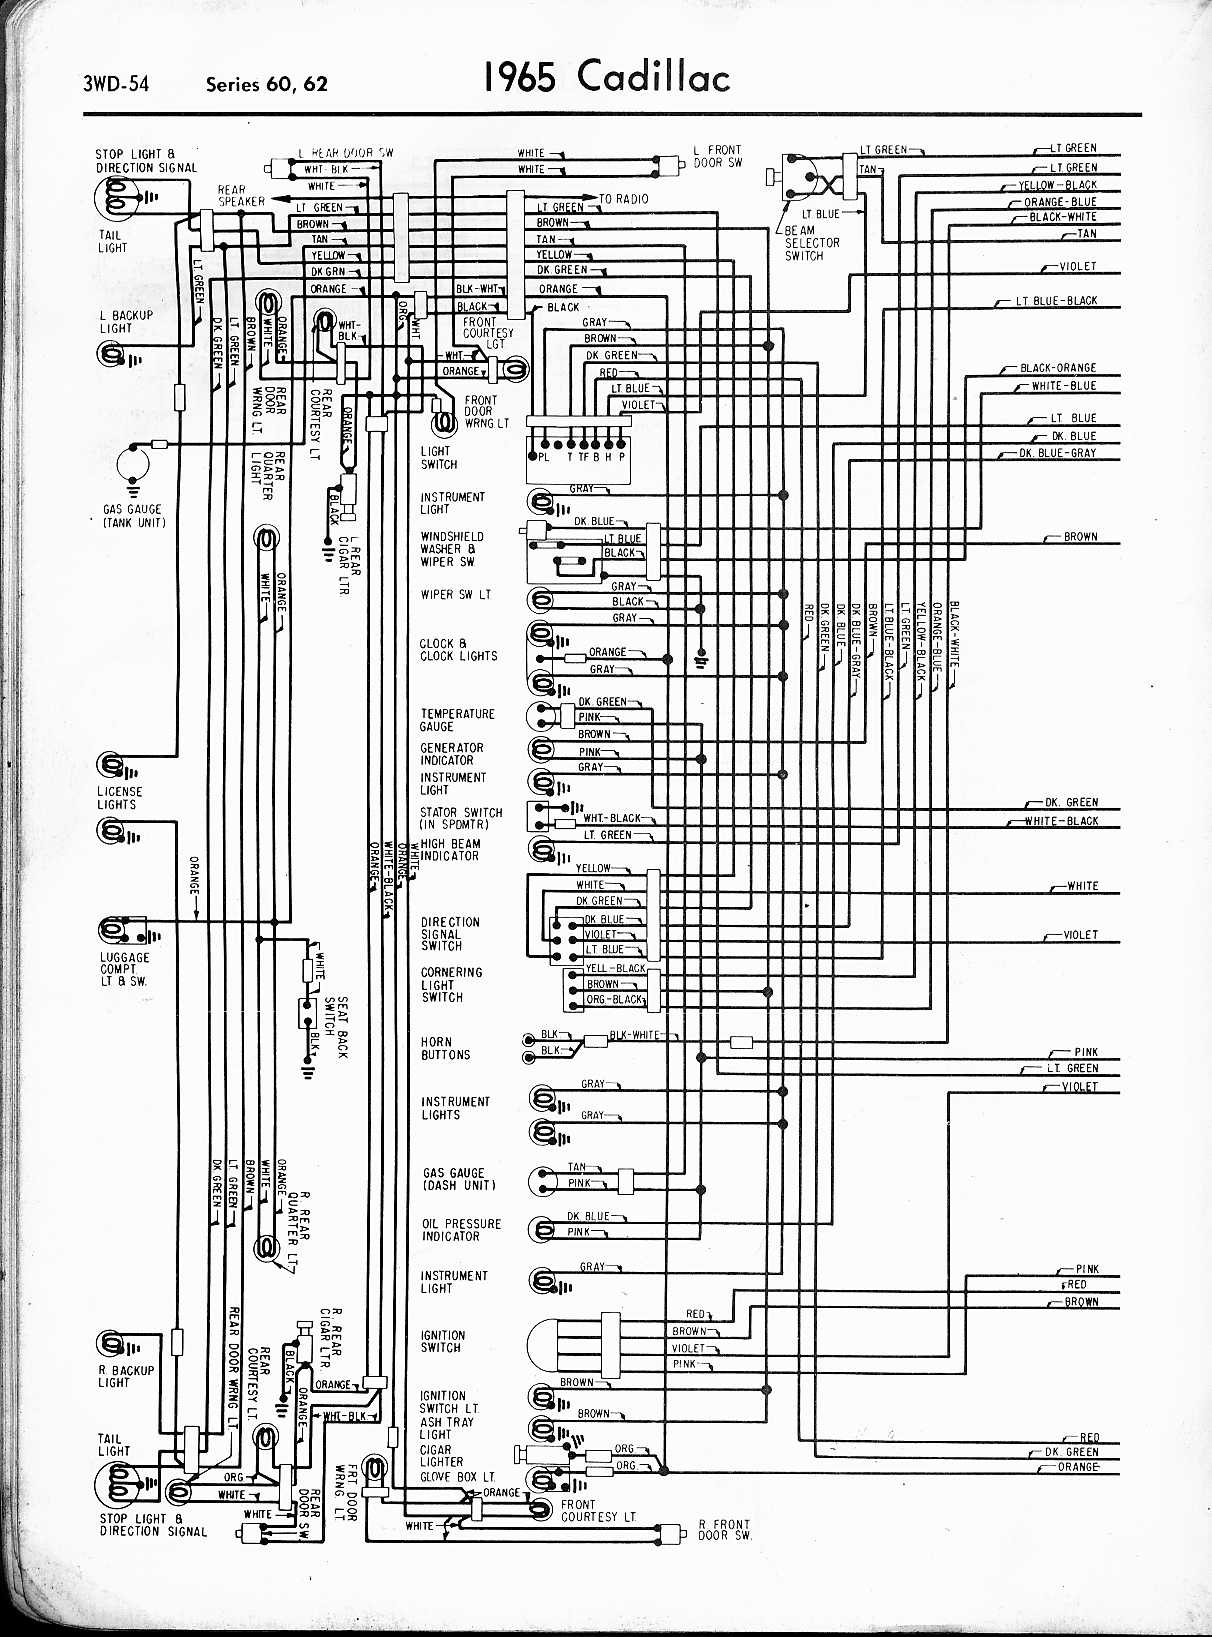 MWireCadi65_3WD 054 cadillac wiring diagrams 1992 cadillac eldorado wiring diagram Rear Defroster Symbol at webbmarketing.co